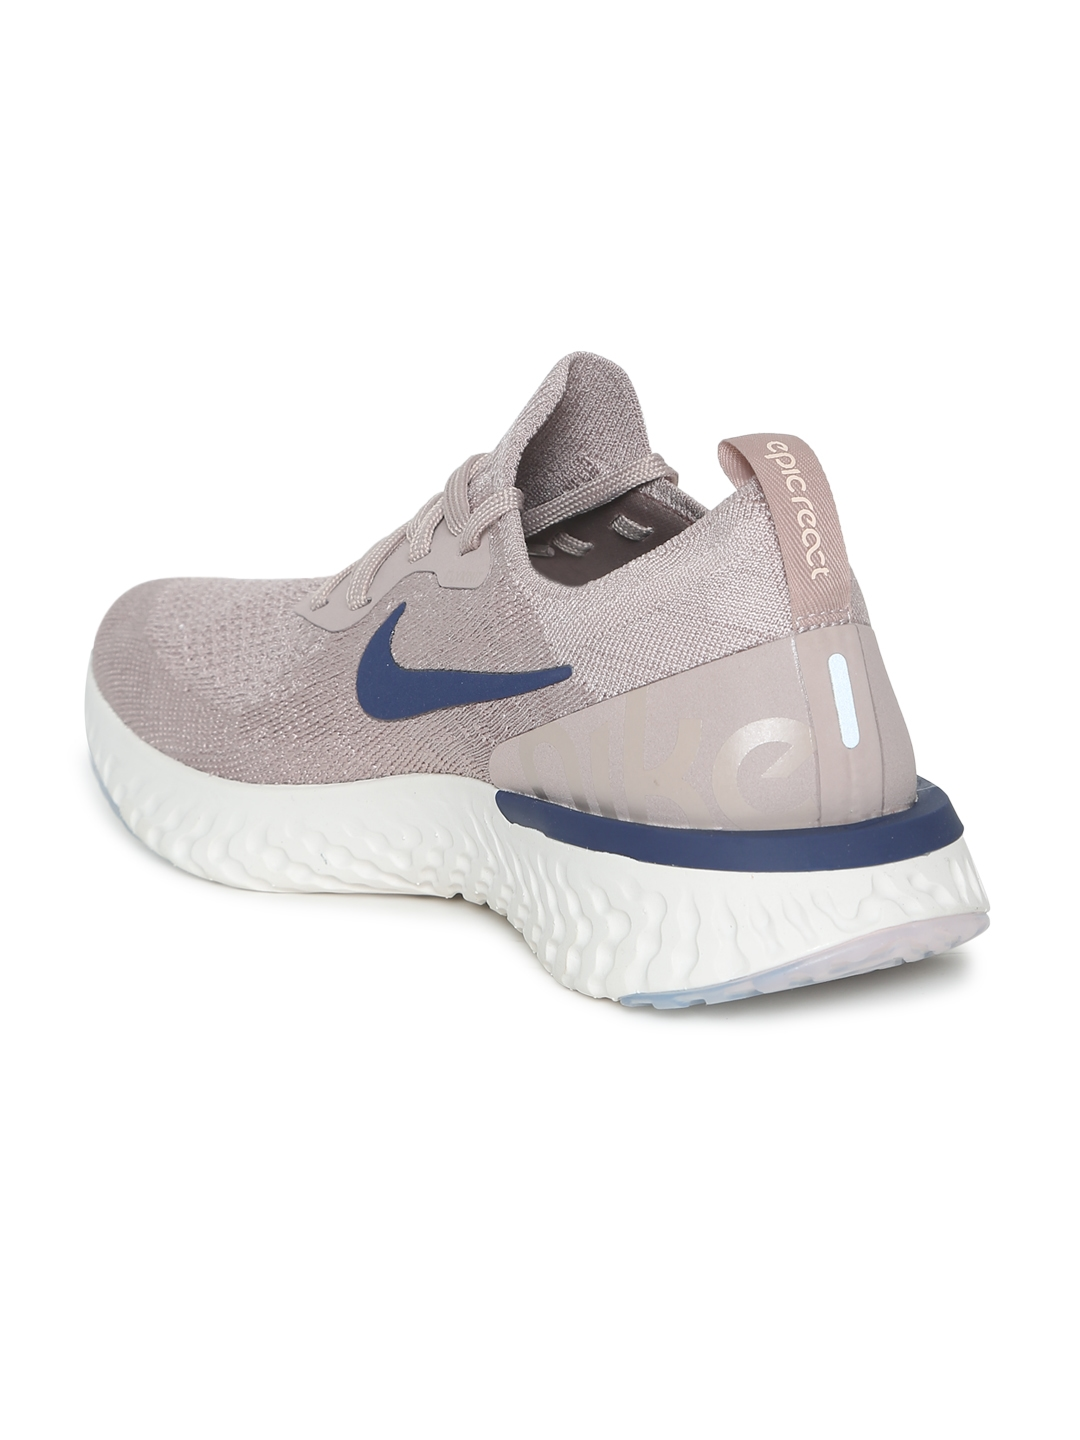 f55a8d13ac0 Buy Nike Men Taupe Epic React Flyknit Running Shoes - Sports Shoes ...